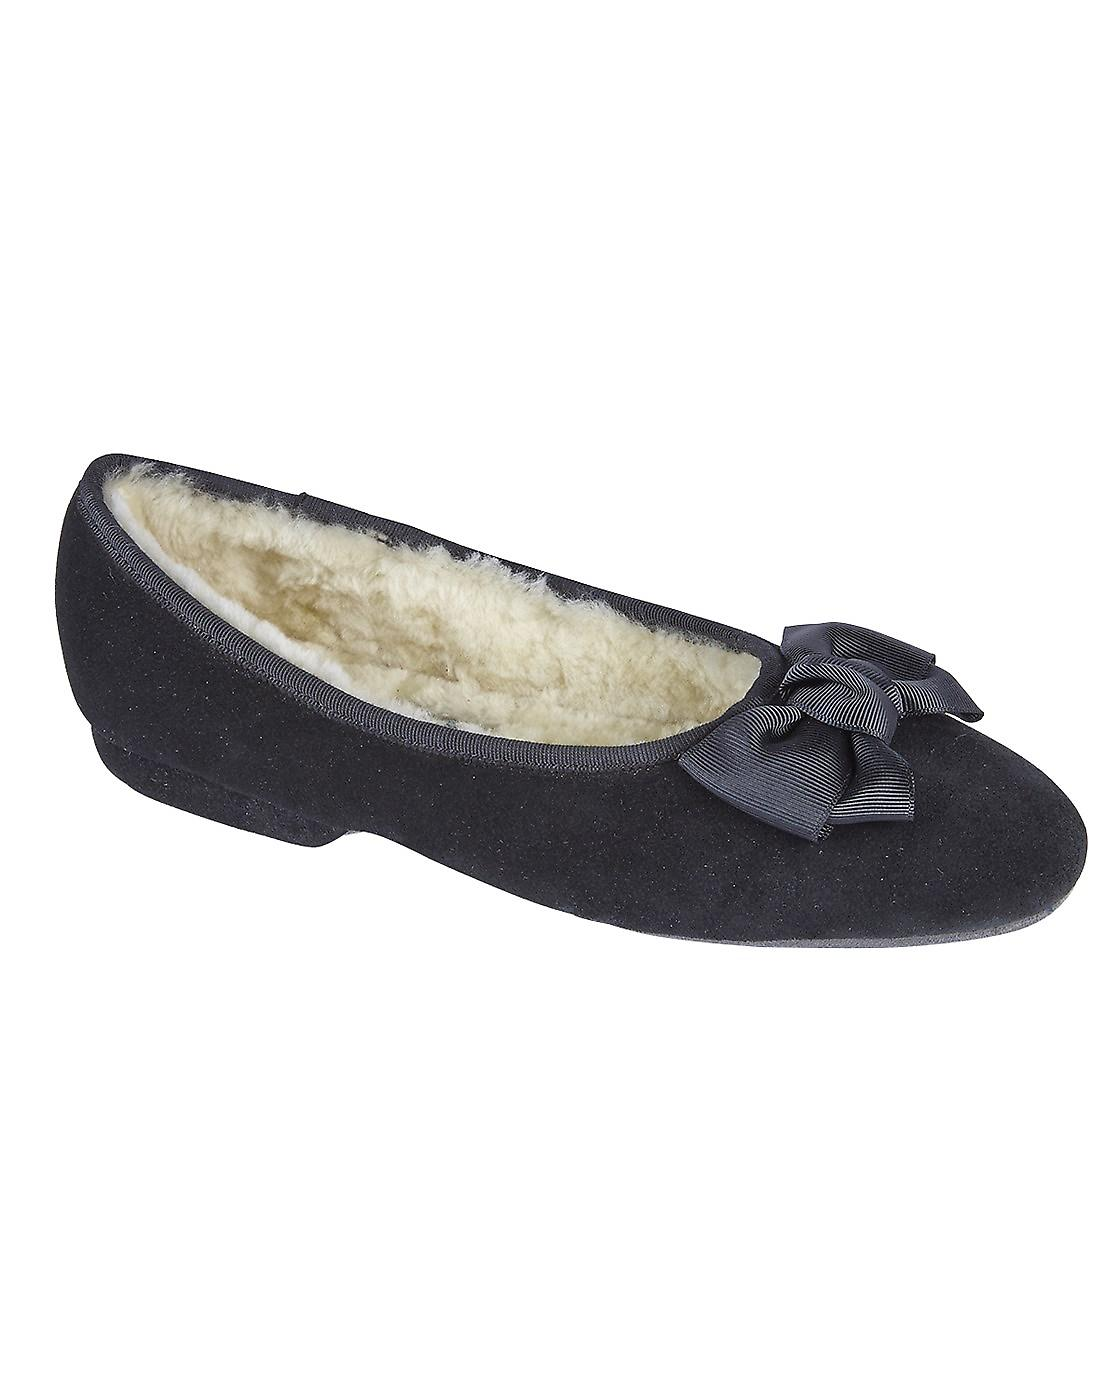 Ladies Ballerina Sheepskin Slippers - Black